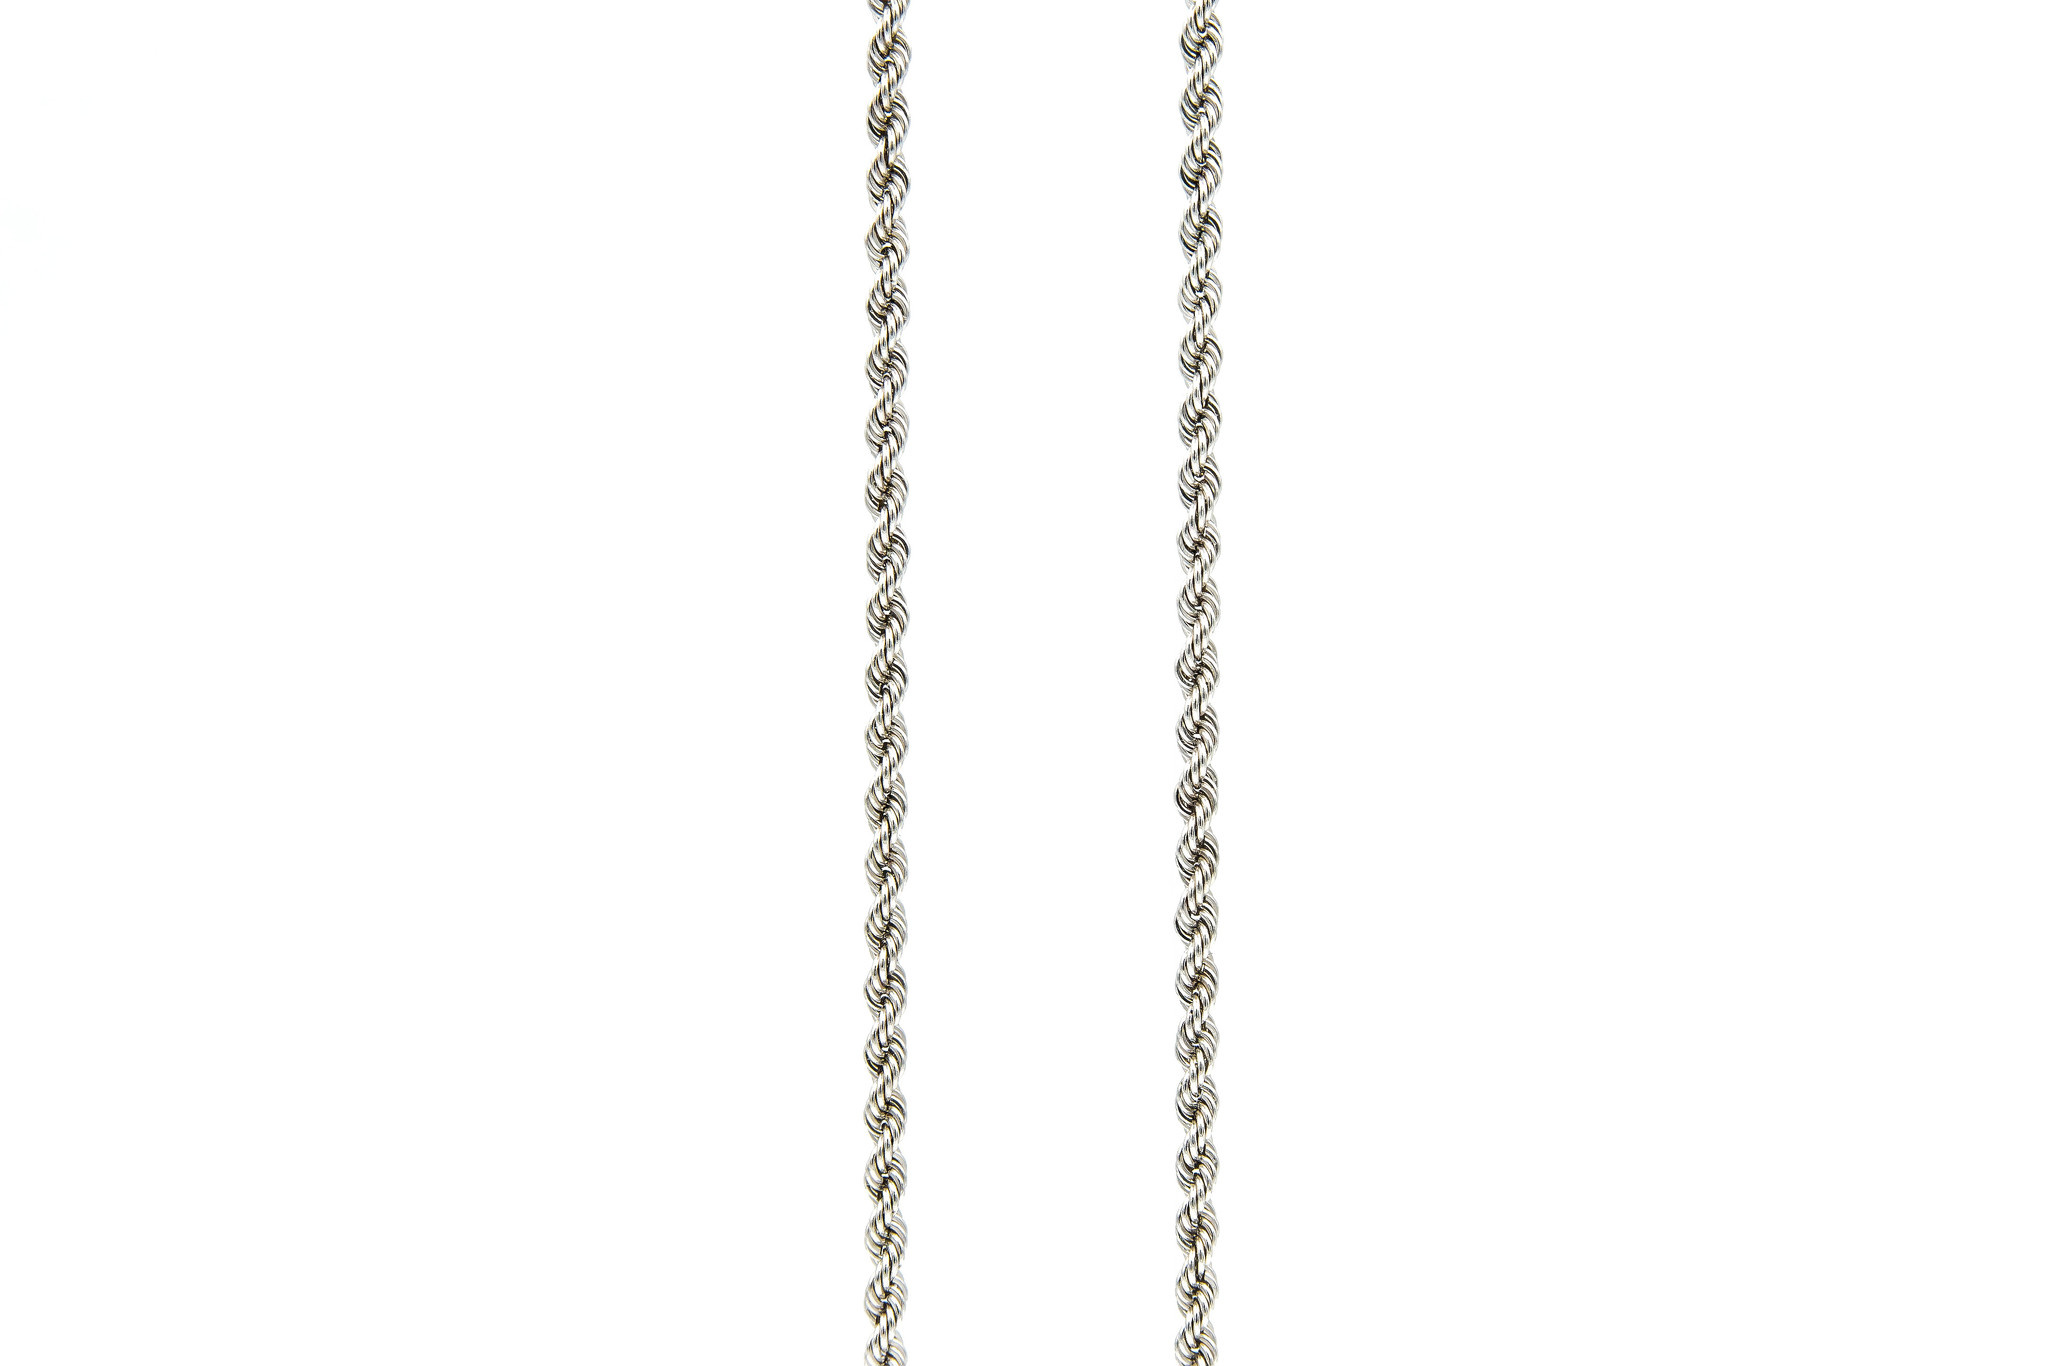 Rope chain witgoud 14kt 3mm-7